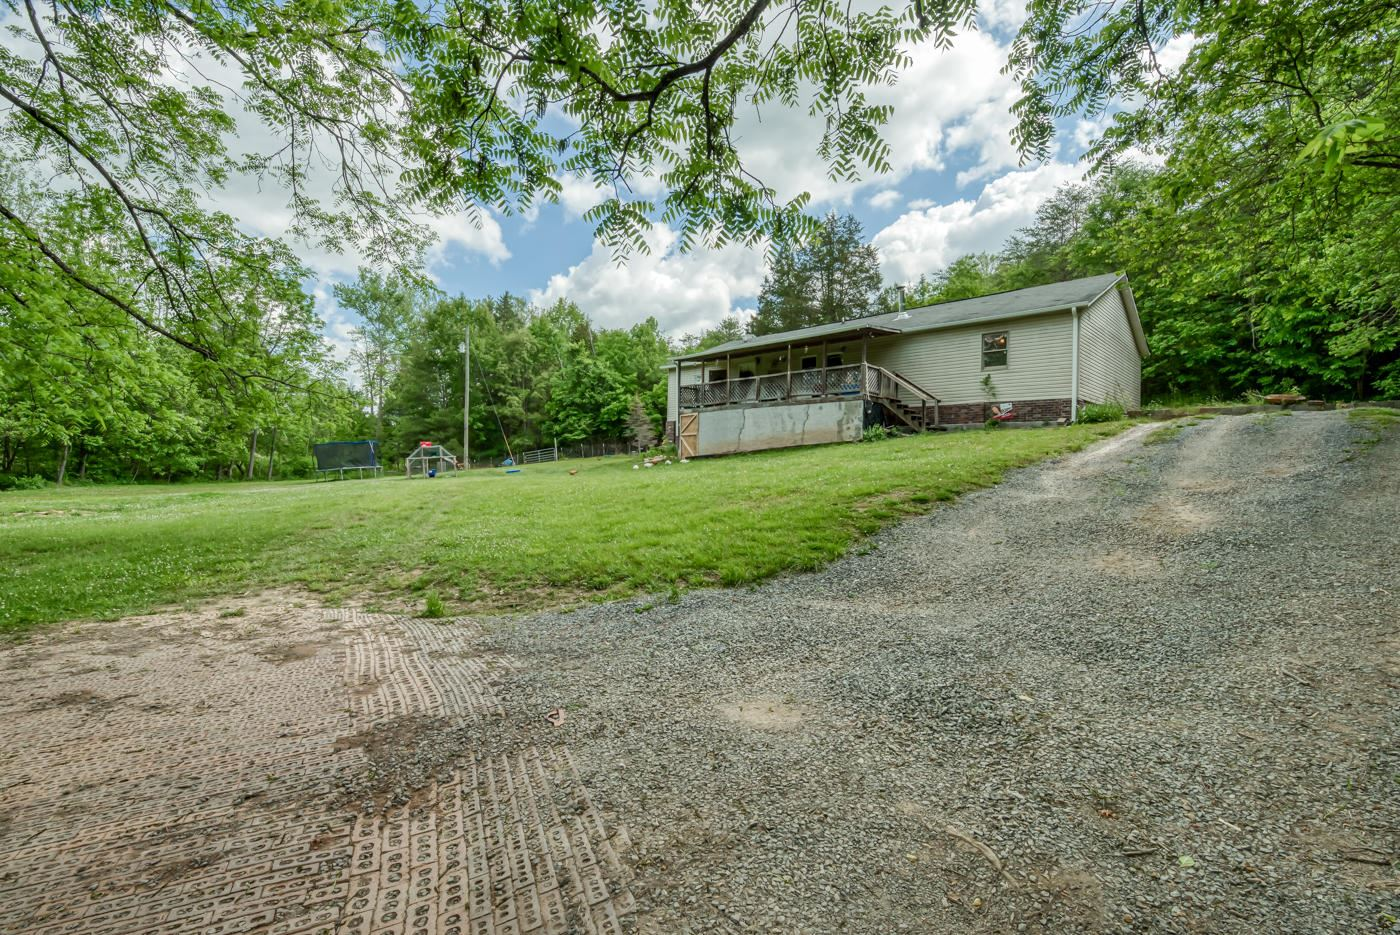 Photo of 1849 South Old State Highway 70s, Rogersville, TN 37857 (MLS # 9923288)